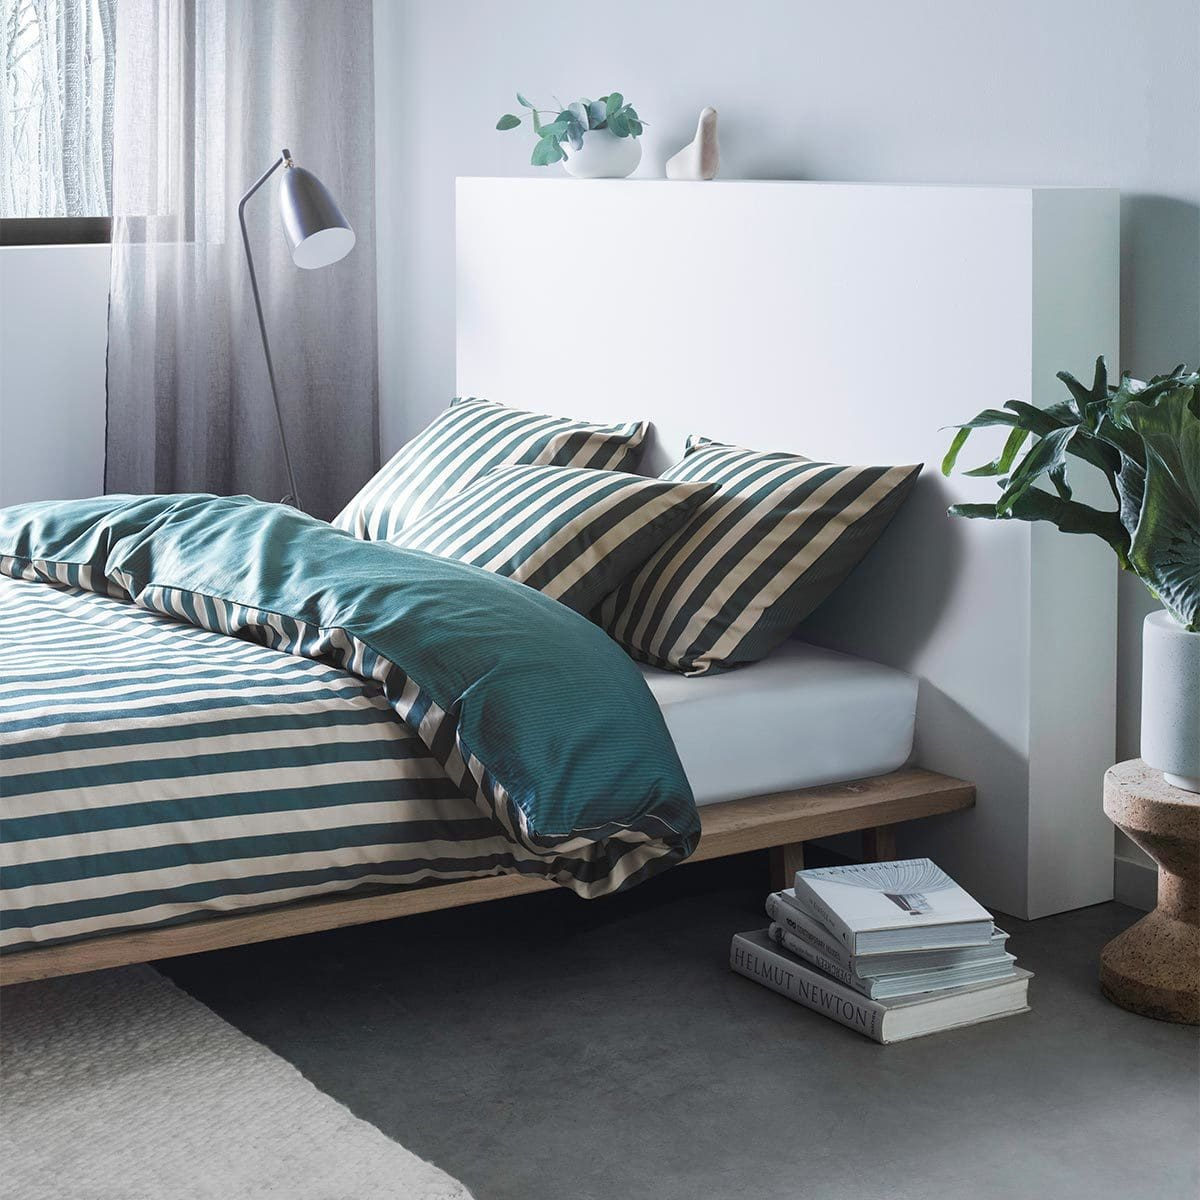 marc o polo bettw sche classic stripe pine green g nstig online kaufen bei bettwaren shop. Black Bedroom Furniture Sets. Home Design Ideas